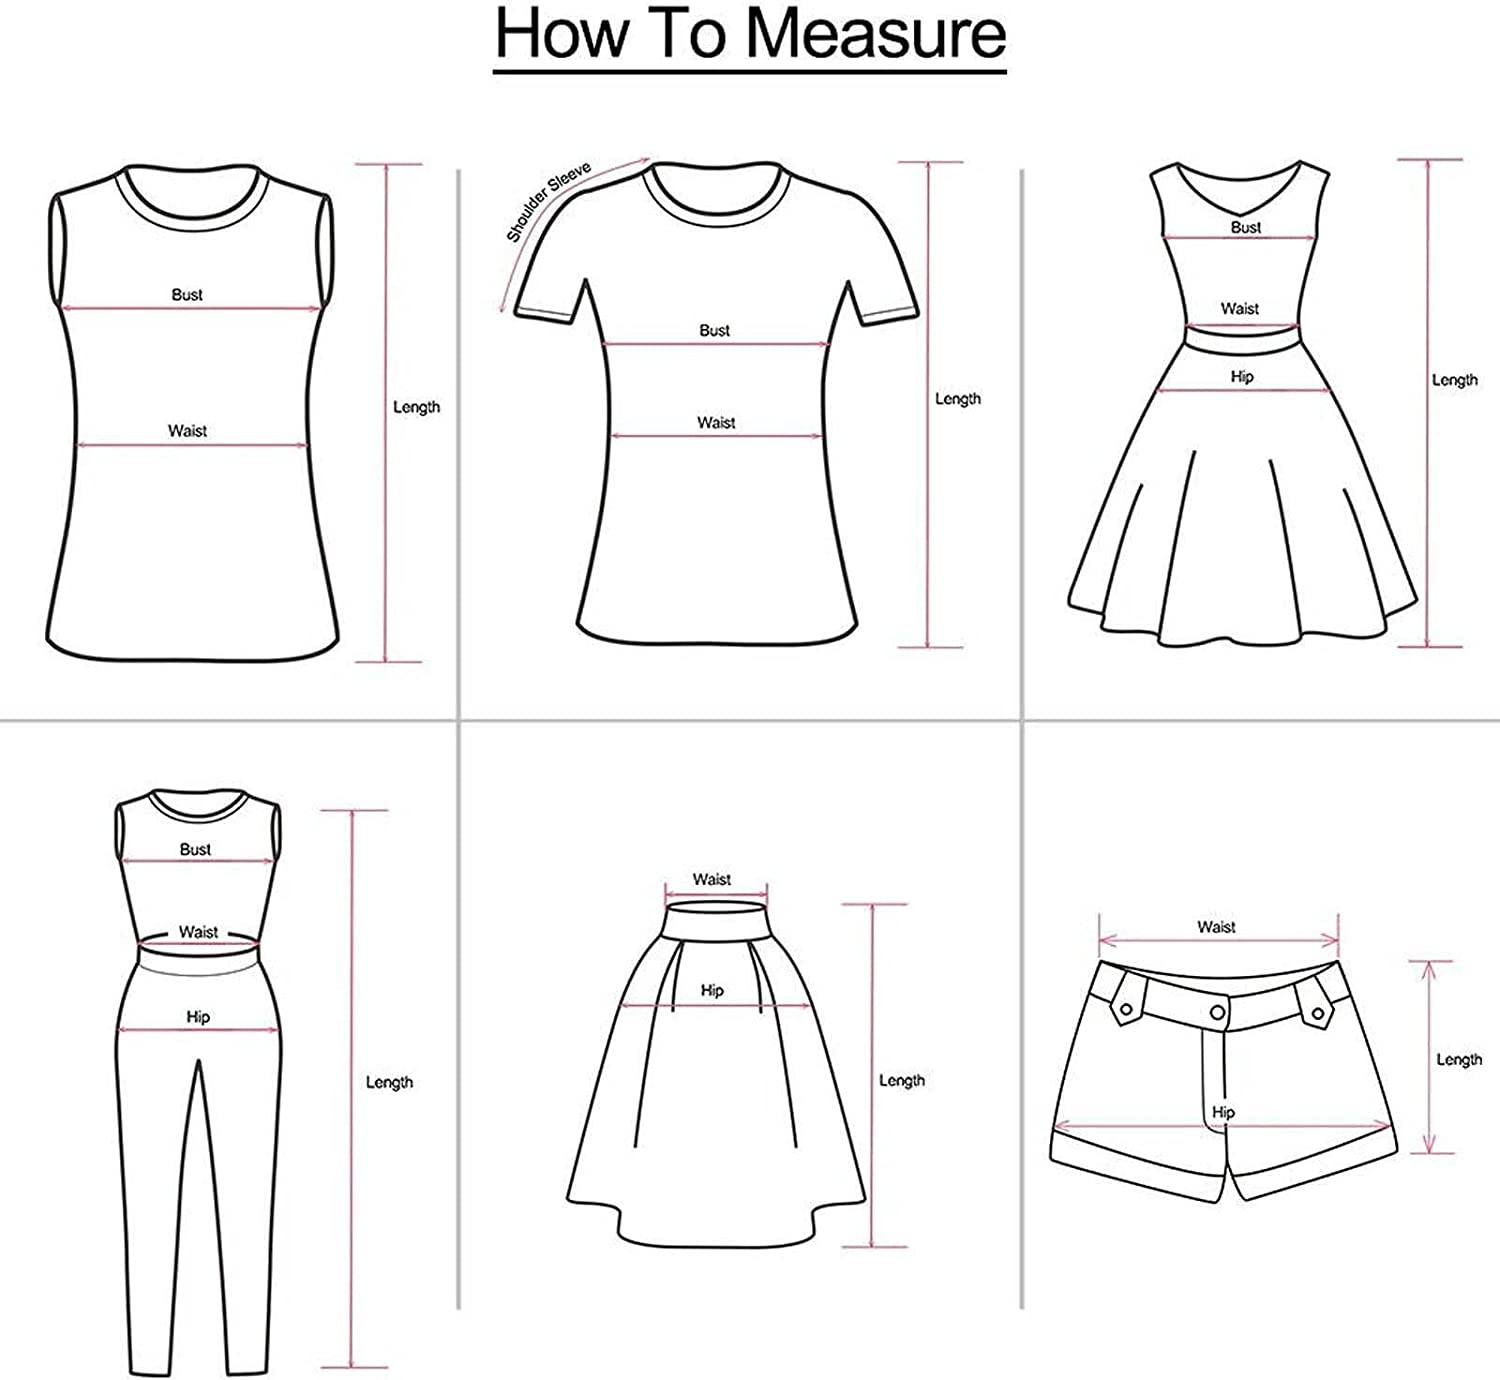 Dress Shirts for Women Wedding Guest Dresses Formal Sexy Loose Mesh Tulle Tutu Skirt Plus Size